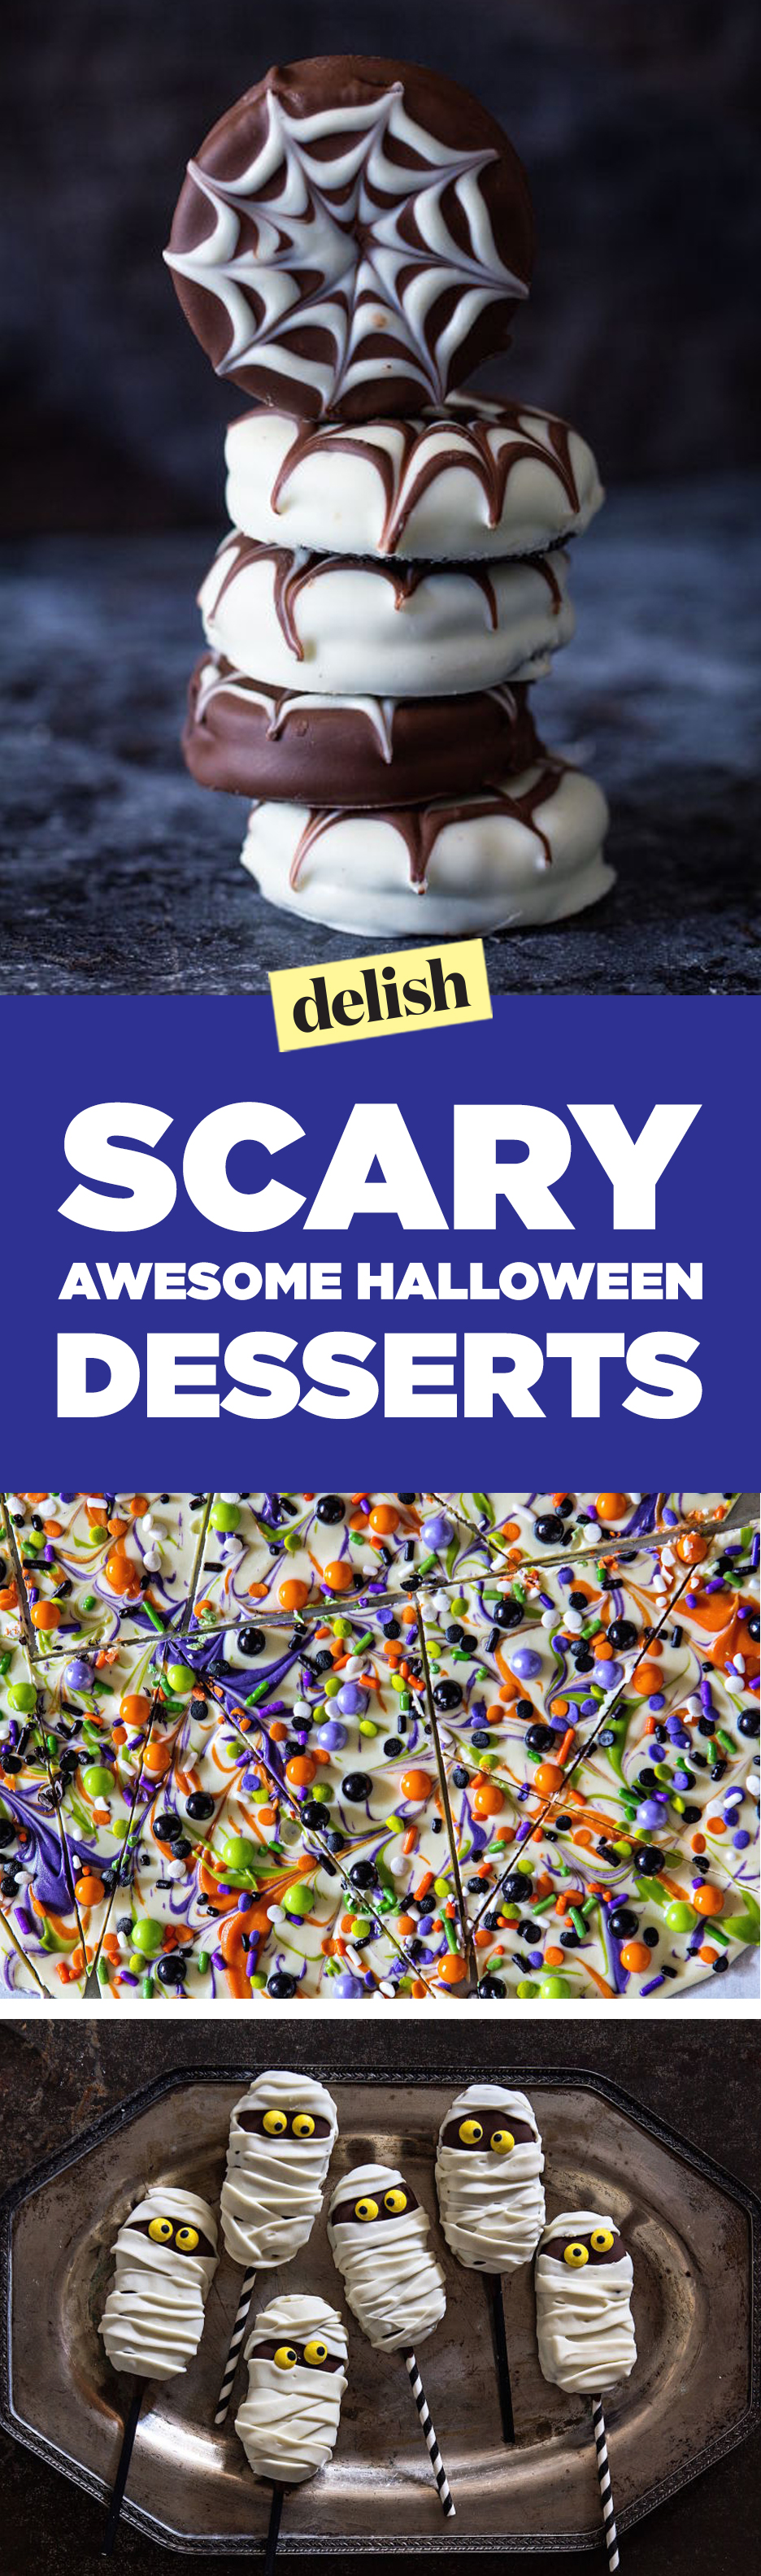 50 easy halloween desserts recipes for halloween party dessert ideasdelishcom - Best Halloween Dessert Recipes